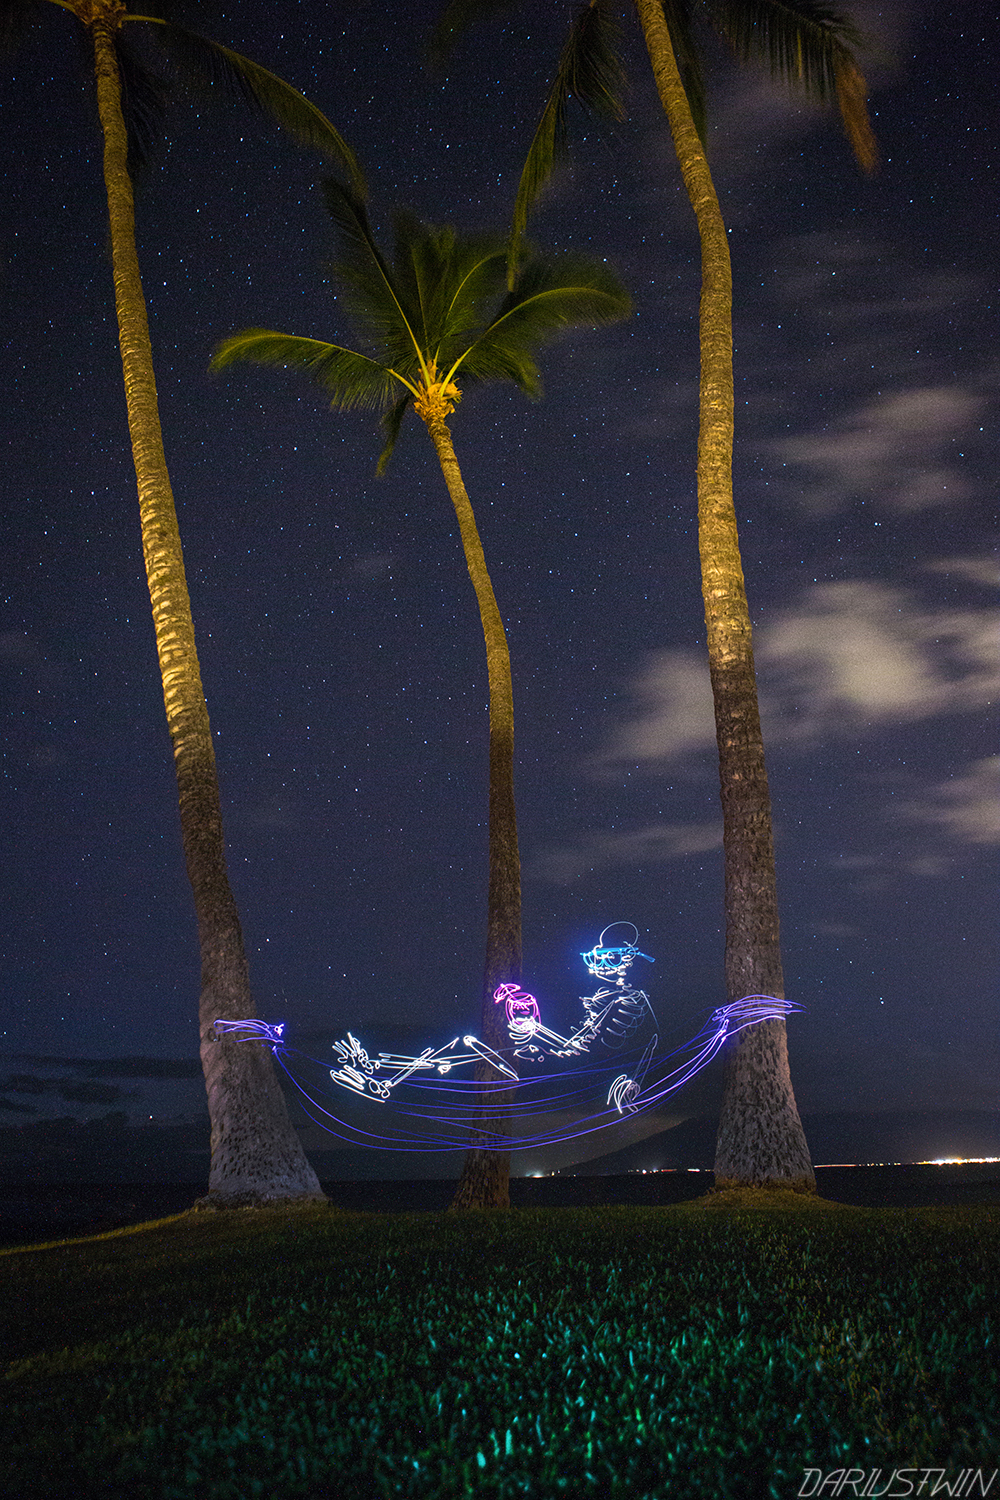 island_time_drinks_cocktail_happyhour_pina_colada_hawaii_hammock_chill_art_skeleton_sunglasses.jpg